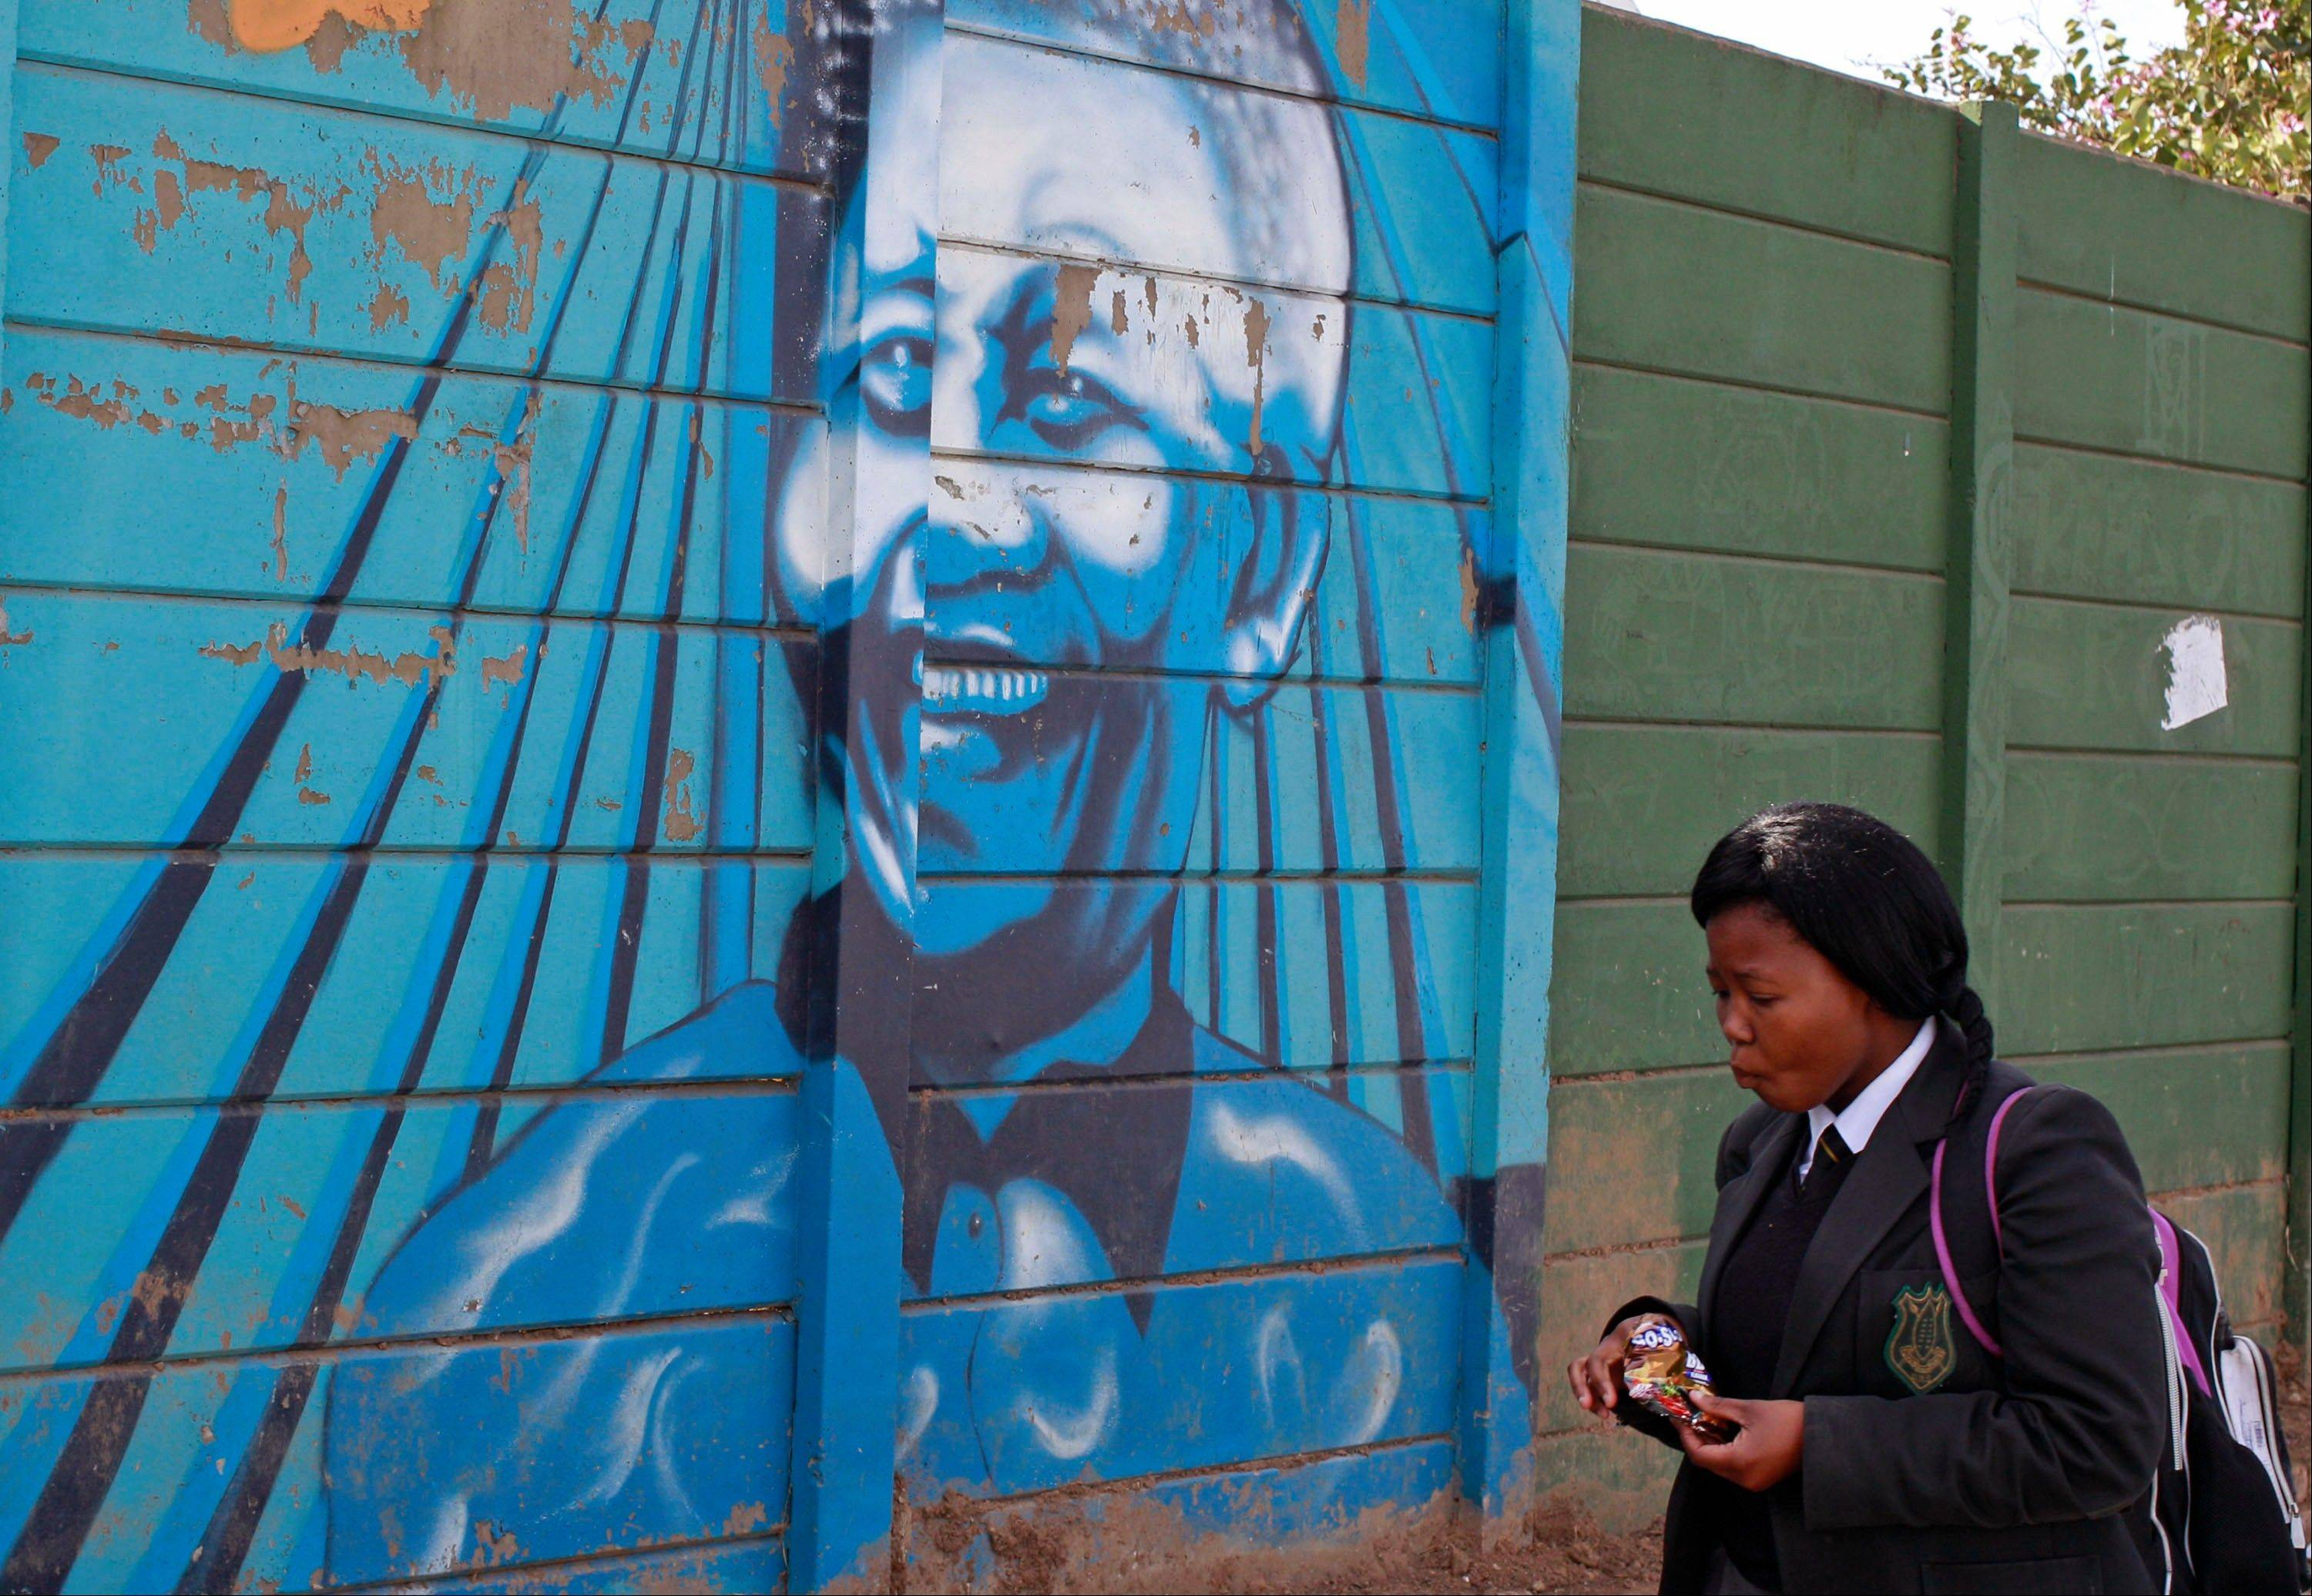 South Africa: Family visits critically ill Mandela